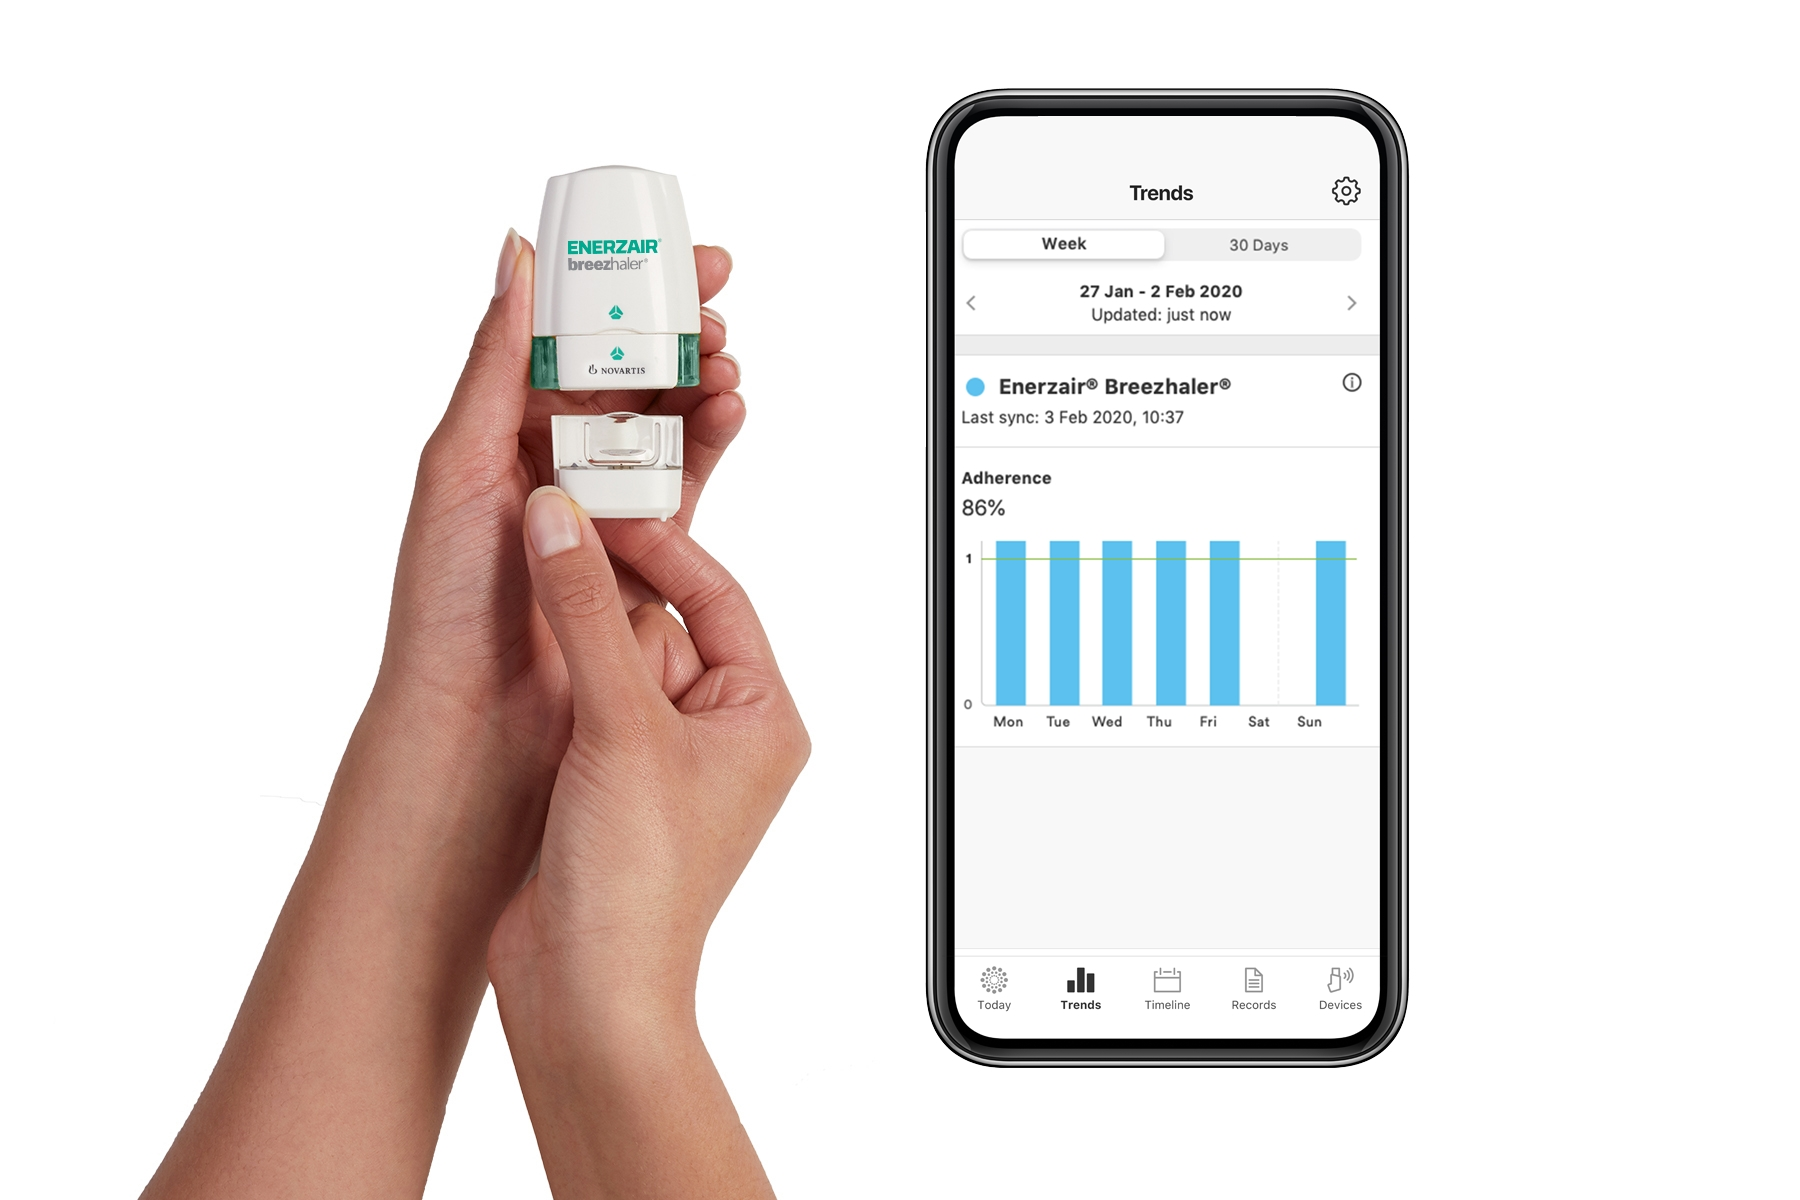 medcitynews.com - Elise Reuter - Propeller gets green light to bundle its digital health tools with inhalers